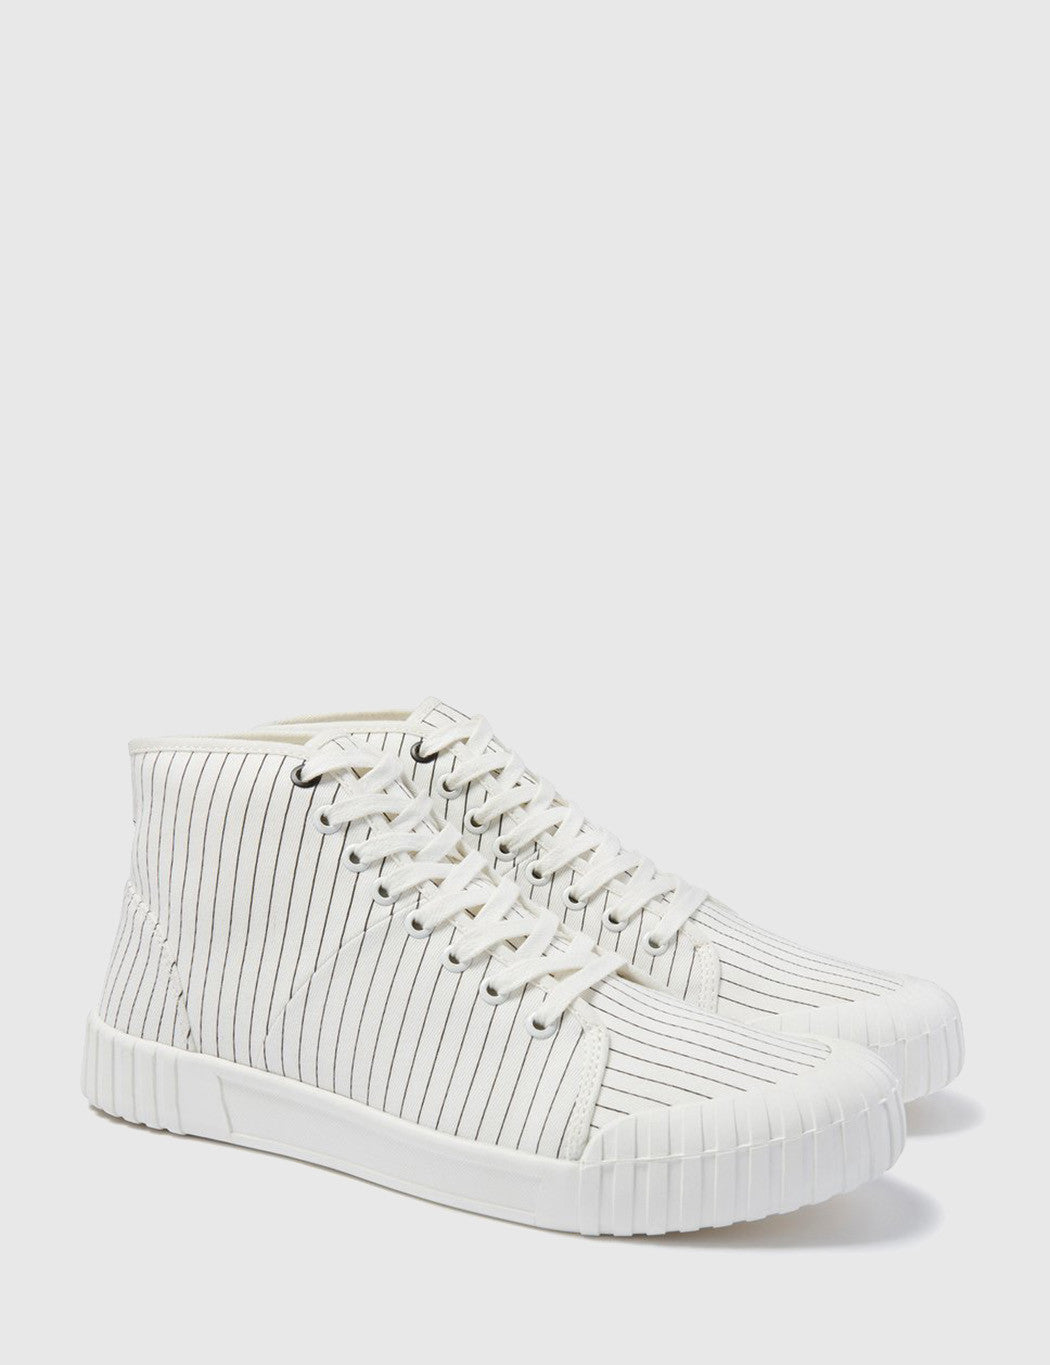 Good News Hurler Hi Trainers (Canvas) - White